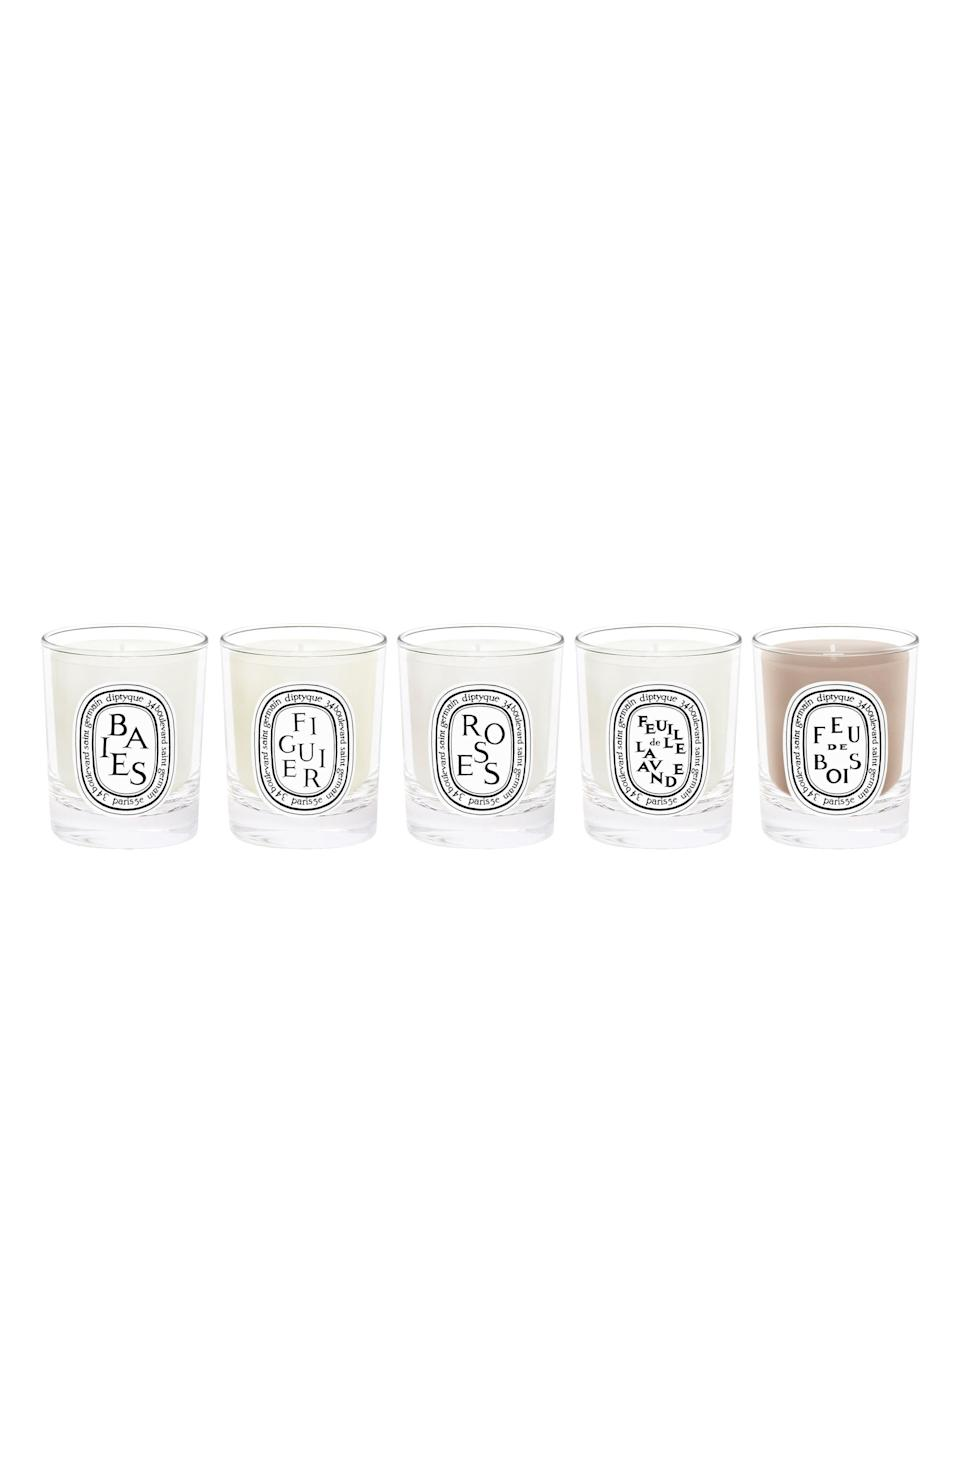 """<p><strong>DIPTYQUE</strong></p><p>nordstrom.com</p><p><a href=""""https://go.redirectingat.com?id=74968X1596630&url=https%3A%2F%2Fwww.nordstrom.com%2Fs%2Fdiptyque-travel-size-scented-candle-set-82-value%2F5894239&sref=https%3A%2F%2Fwww.bestproducts.com%2Fhome%2Fg37170909%2Fnordstrom-anniversary-sale-2021%2F"""" rel=""""nofollow noopener"""" target=""""_blank"""" data-ylk=""""slk:Shop Now"""" class=""""link rapid-noclick-resp"""">Shop Now</a></p><p><strong>$60.00</strong> </p><p>This limited-edition set features five travel-size candles of the brand's most iconic scents. Valuing in at $82, this collection is a nice addition to any home fragrance library.</p>"""